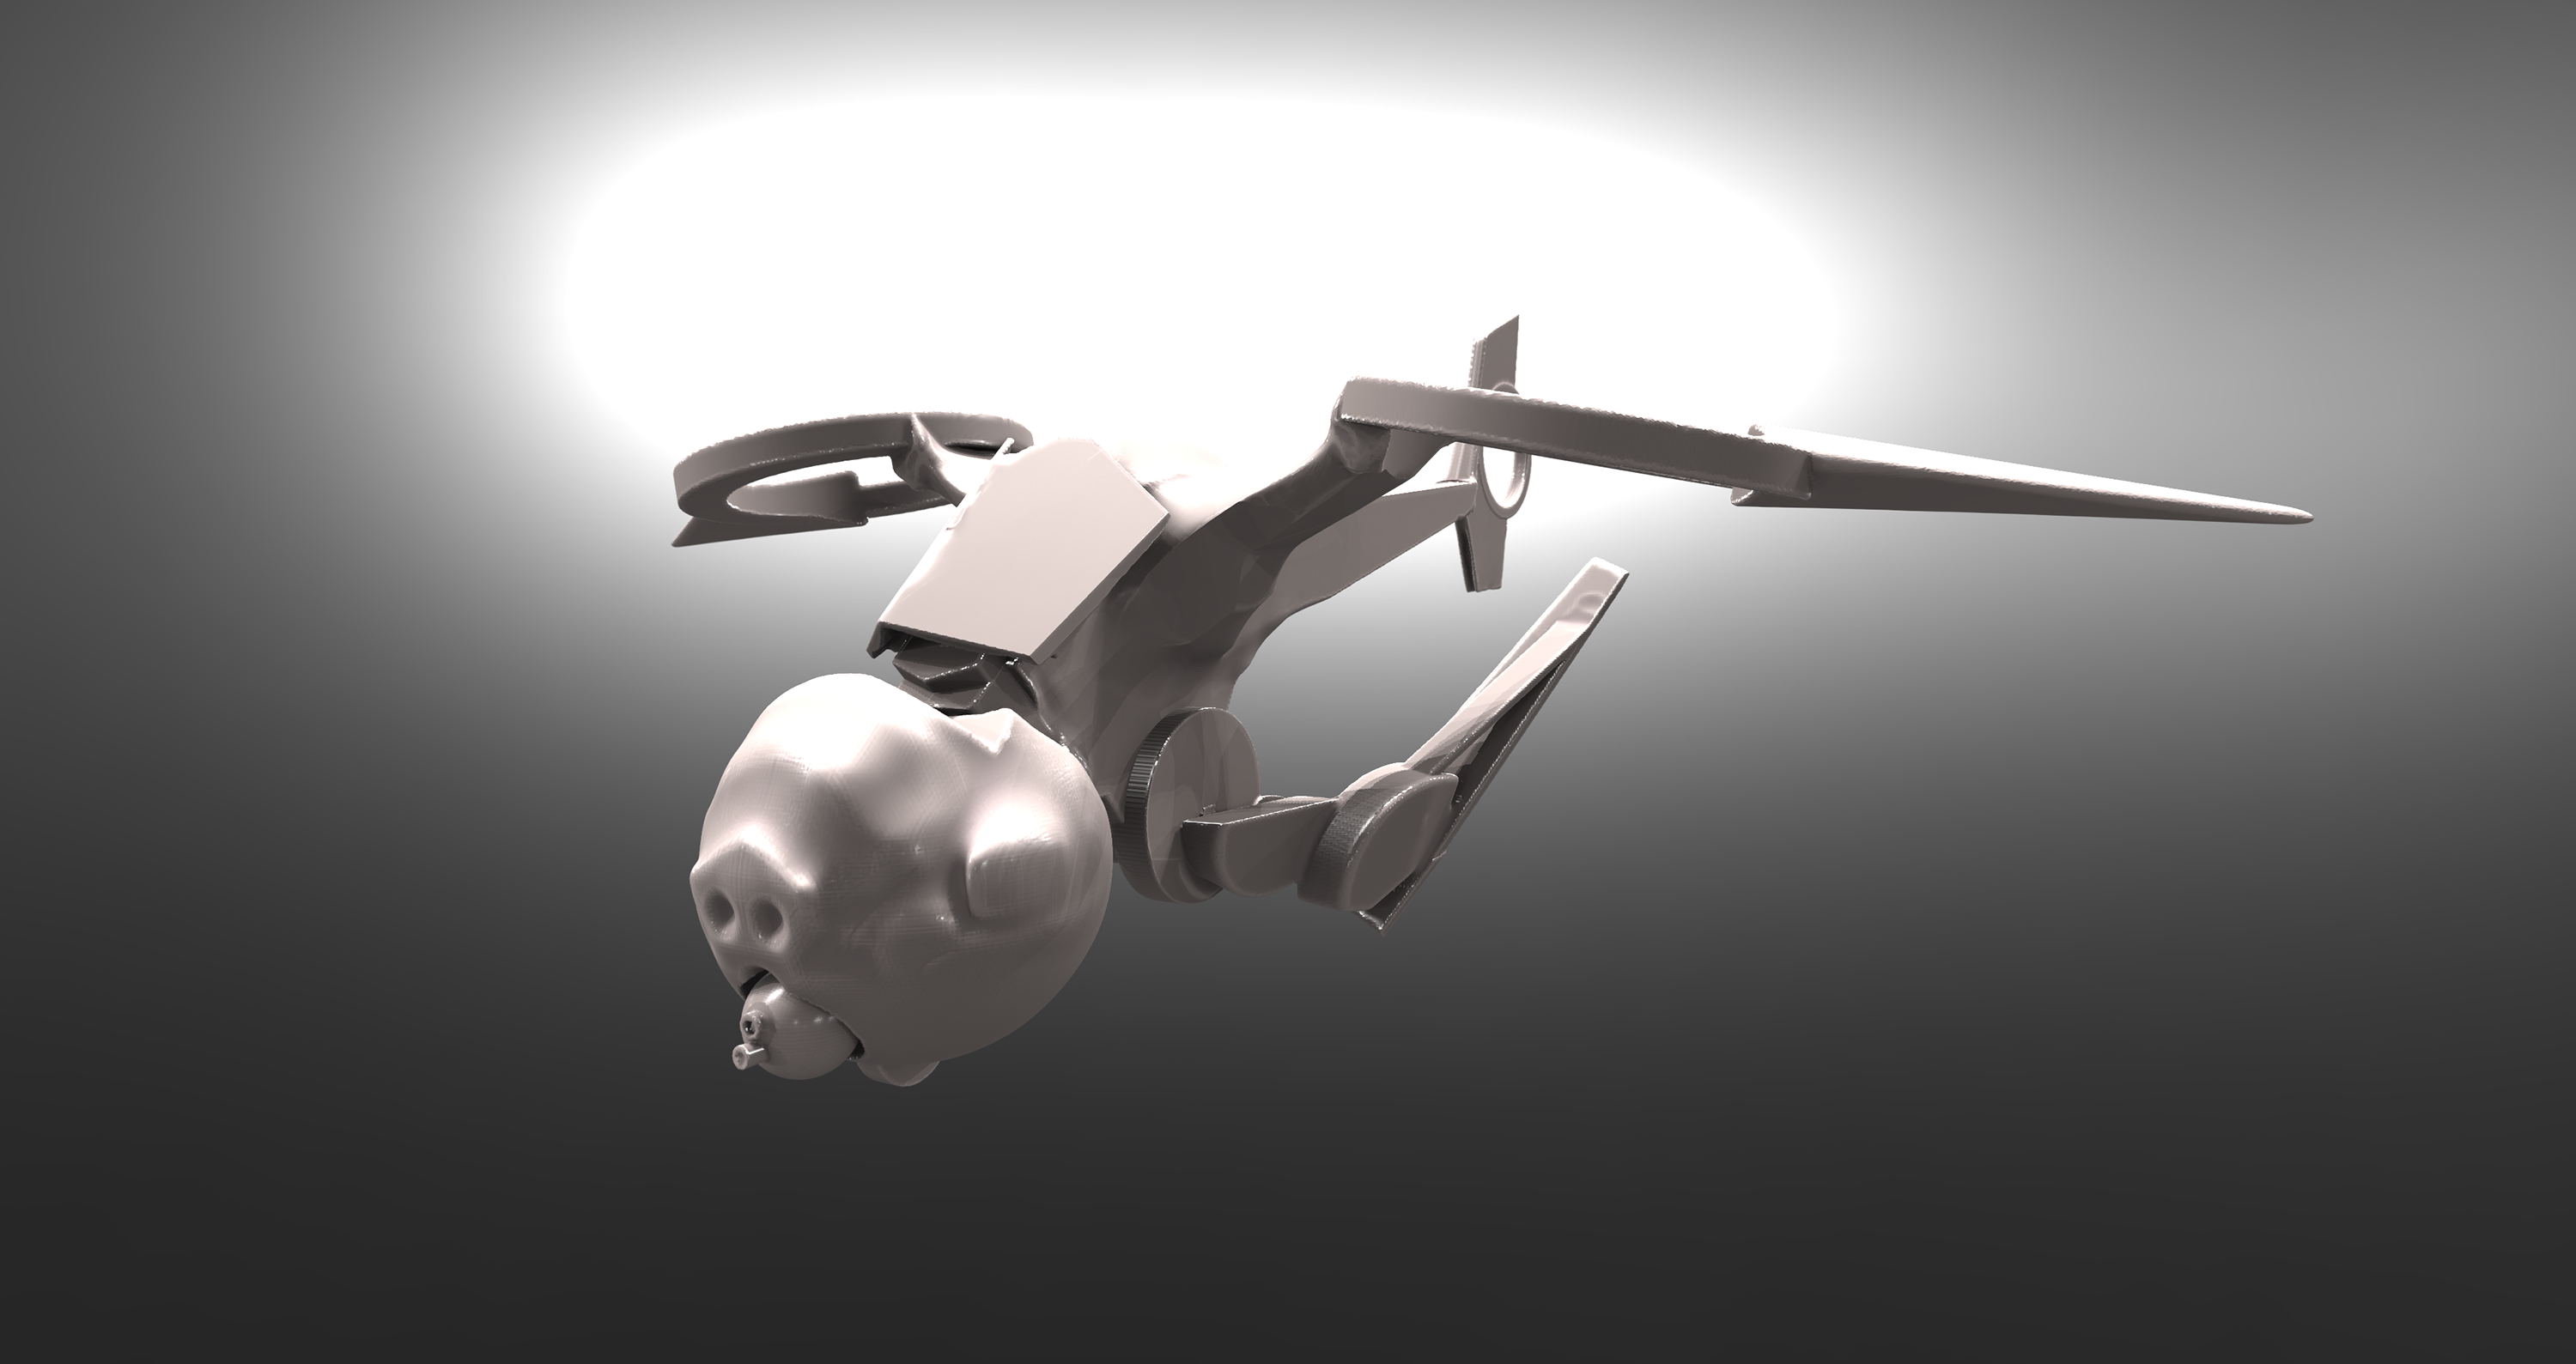 Drone wip 2.png